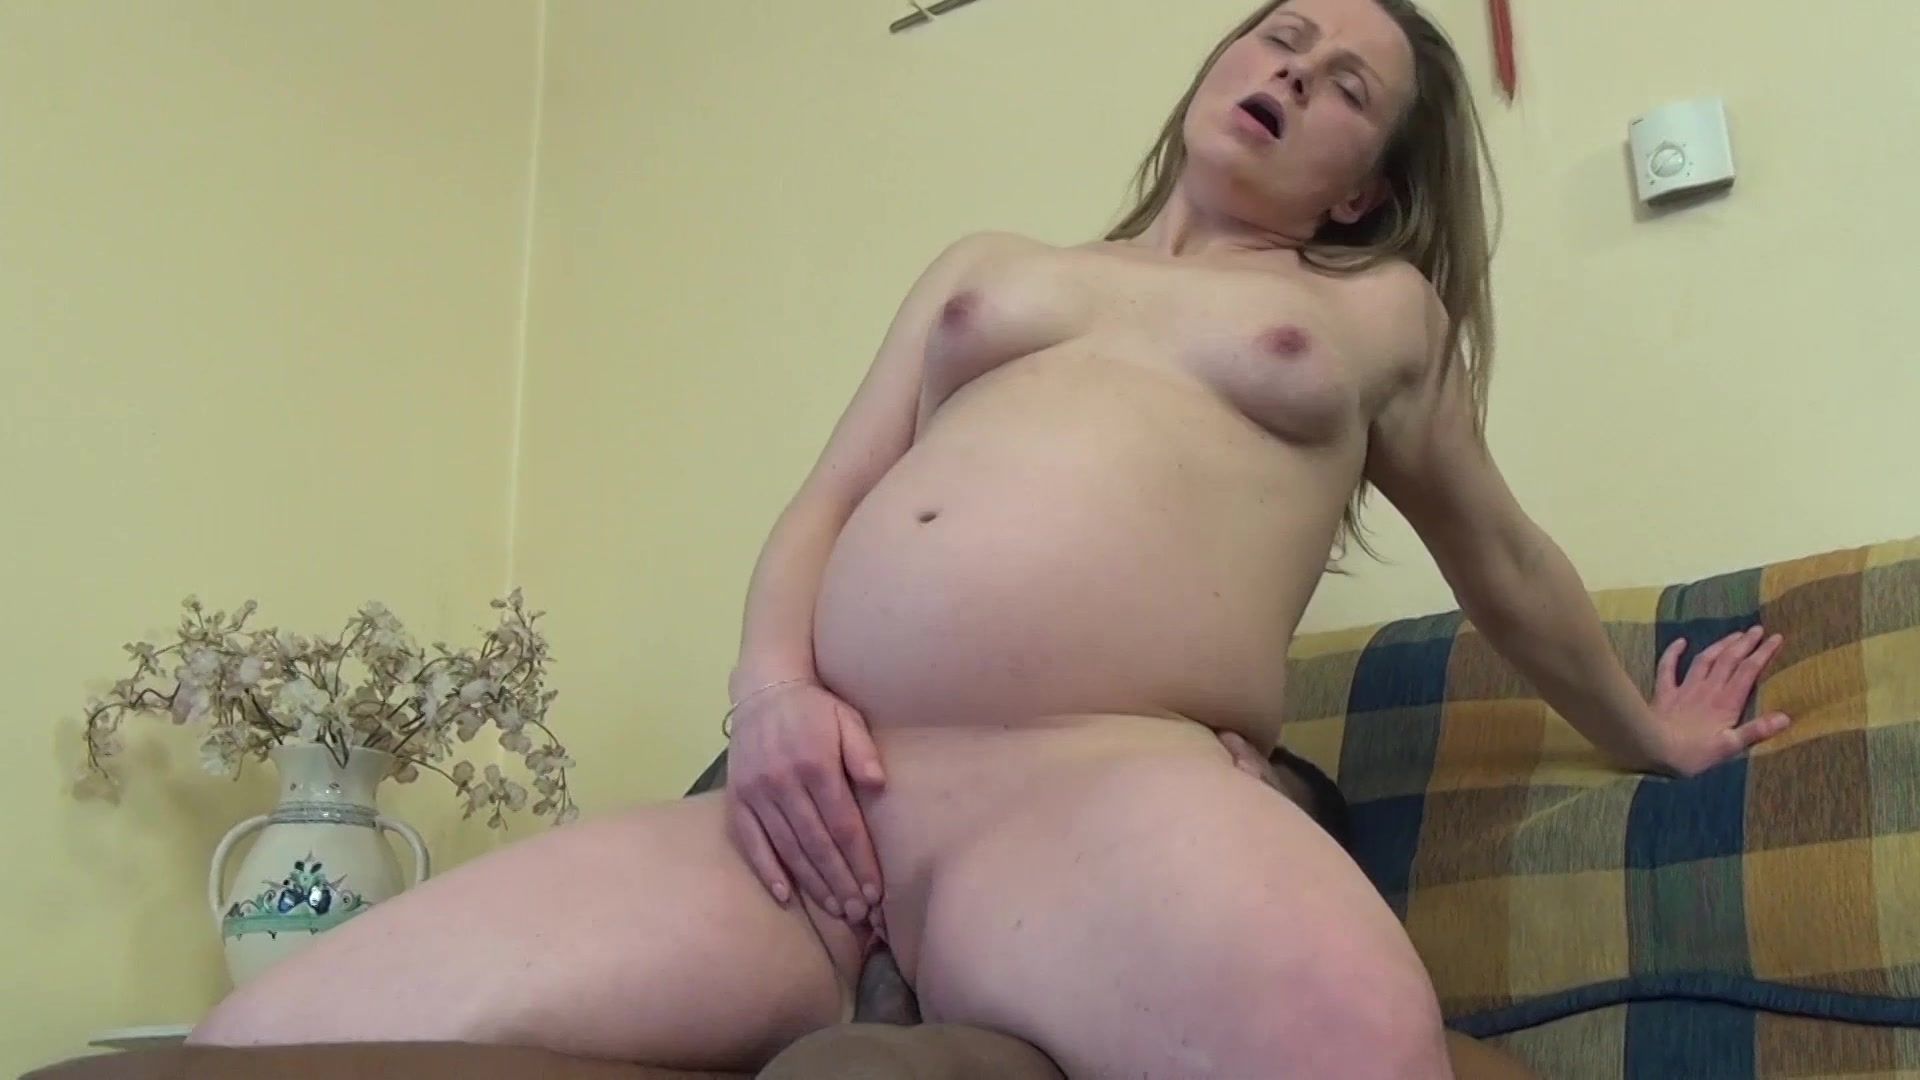 Blonde wet pussy close up